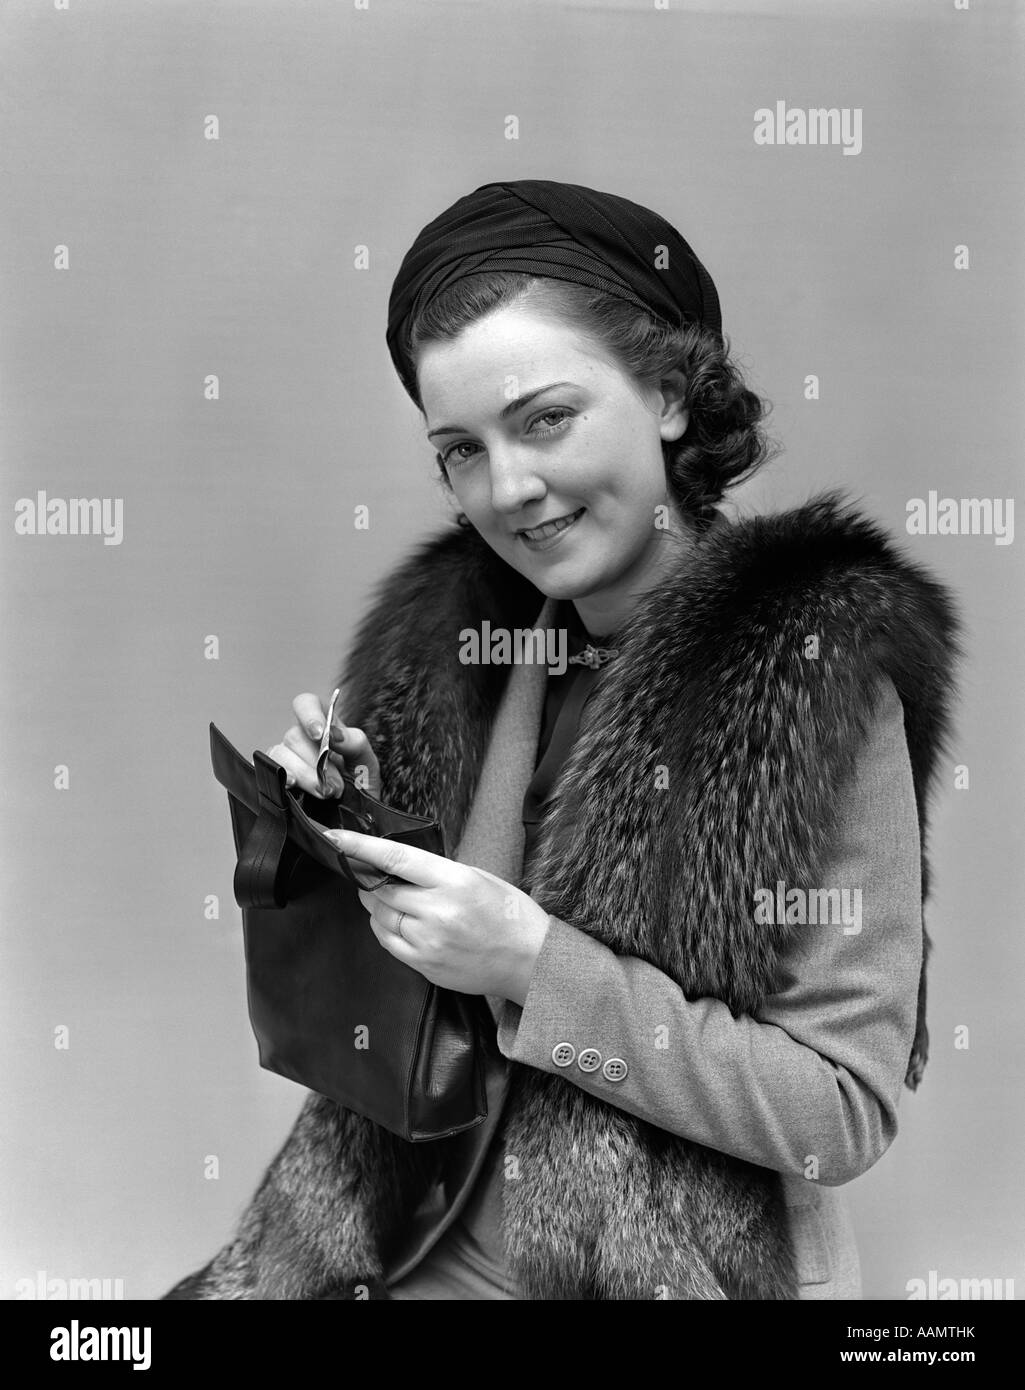 1930s 1940s WOMAN DRESSED UP WITH FUR JACKET HOLDING PURSE AND MONEY LOOKING AT CAMERA - Stock Image